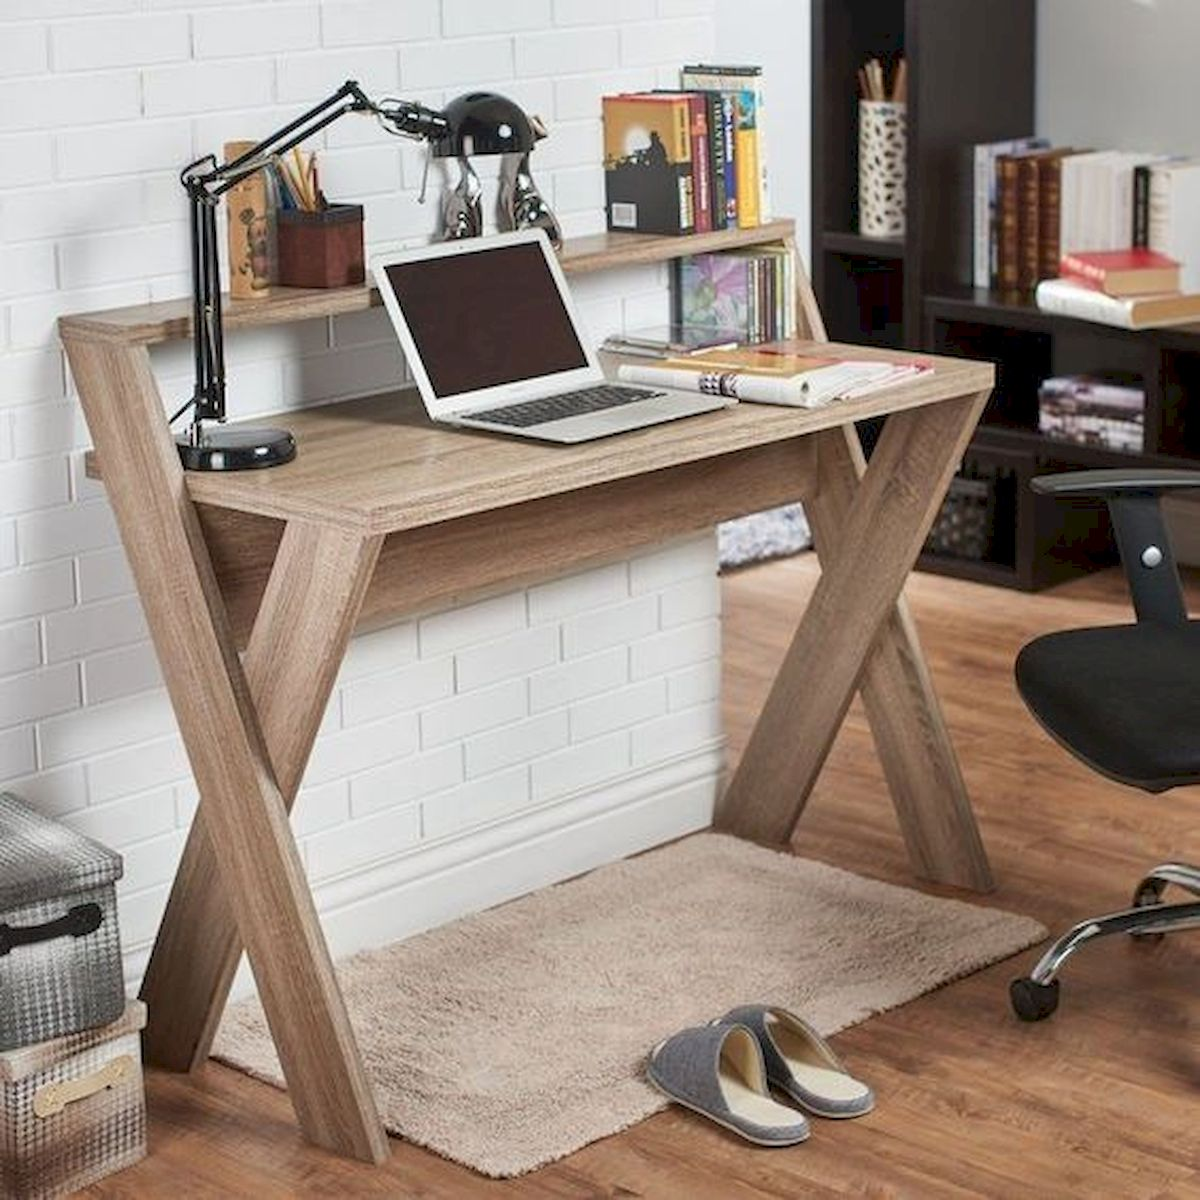 45 Easy and Cheap DIY Wood Furniture Ideas for Small House (26)